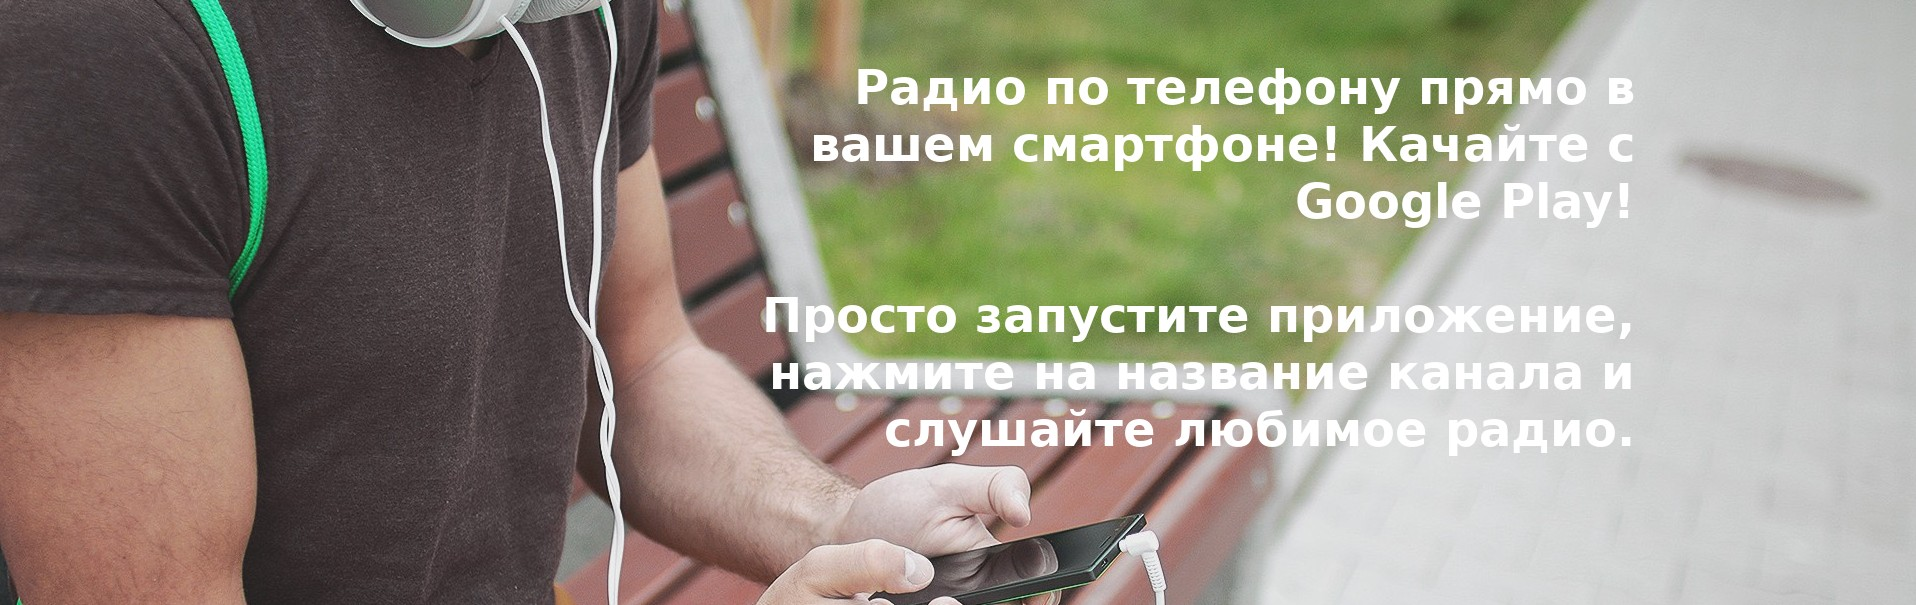 smartphone-writing-hand-person-music-leg-993010-pxhere.com_-3